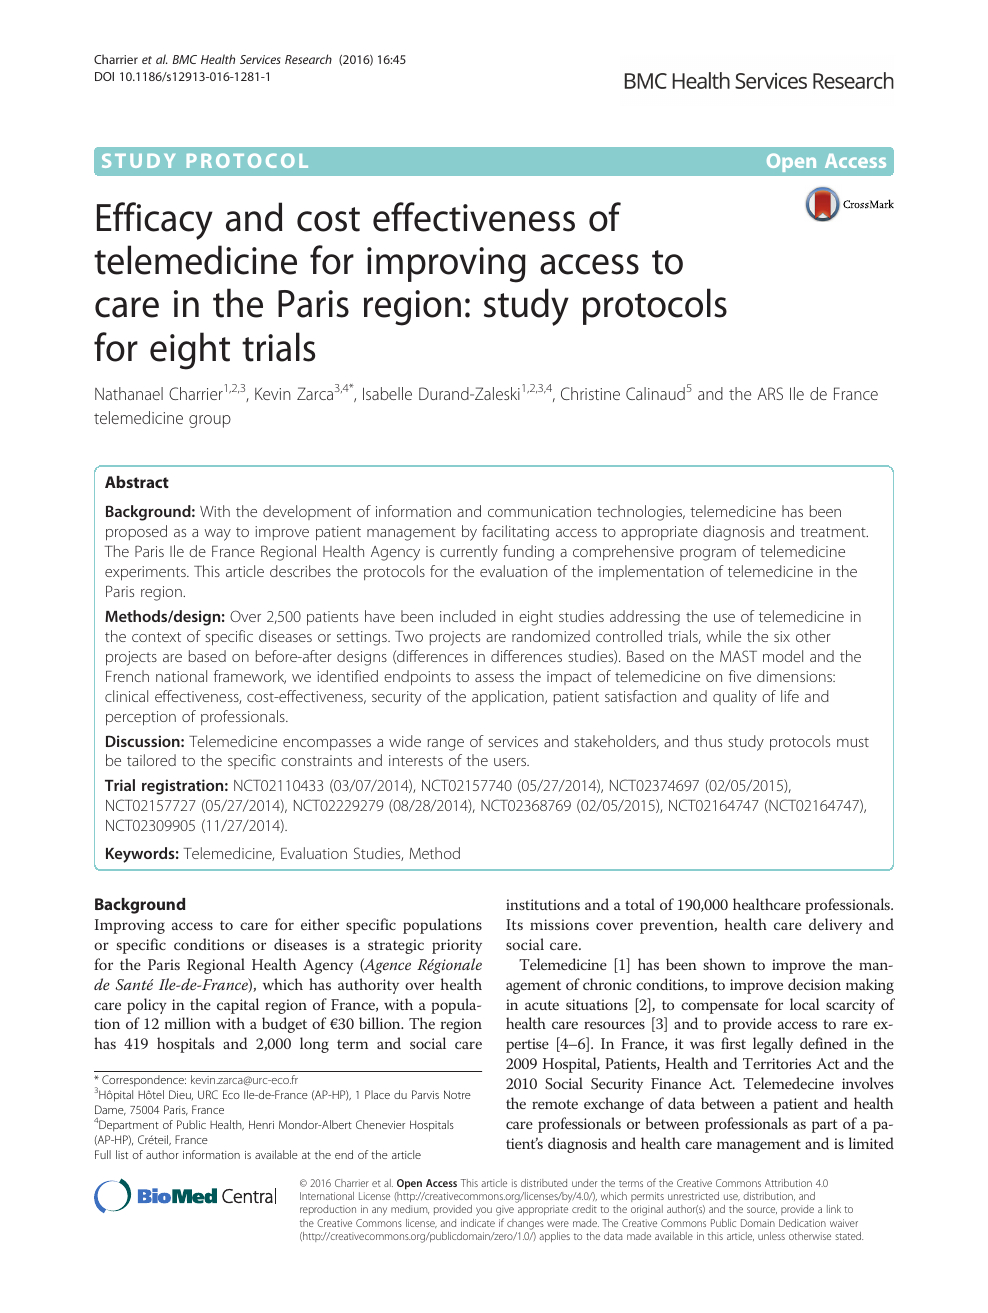 Efficacy And Cost Effectiveness Of Telemedicine For à Liste Region De France